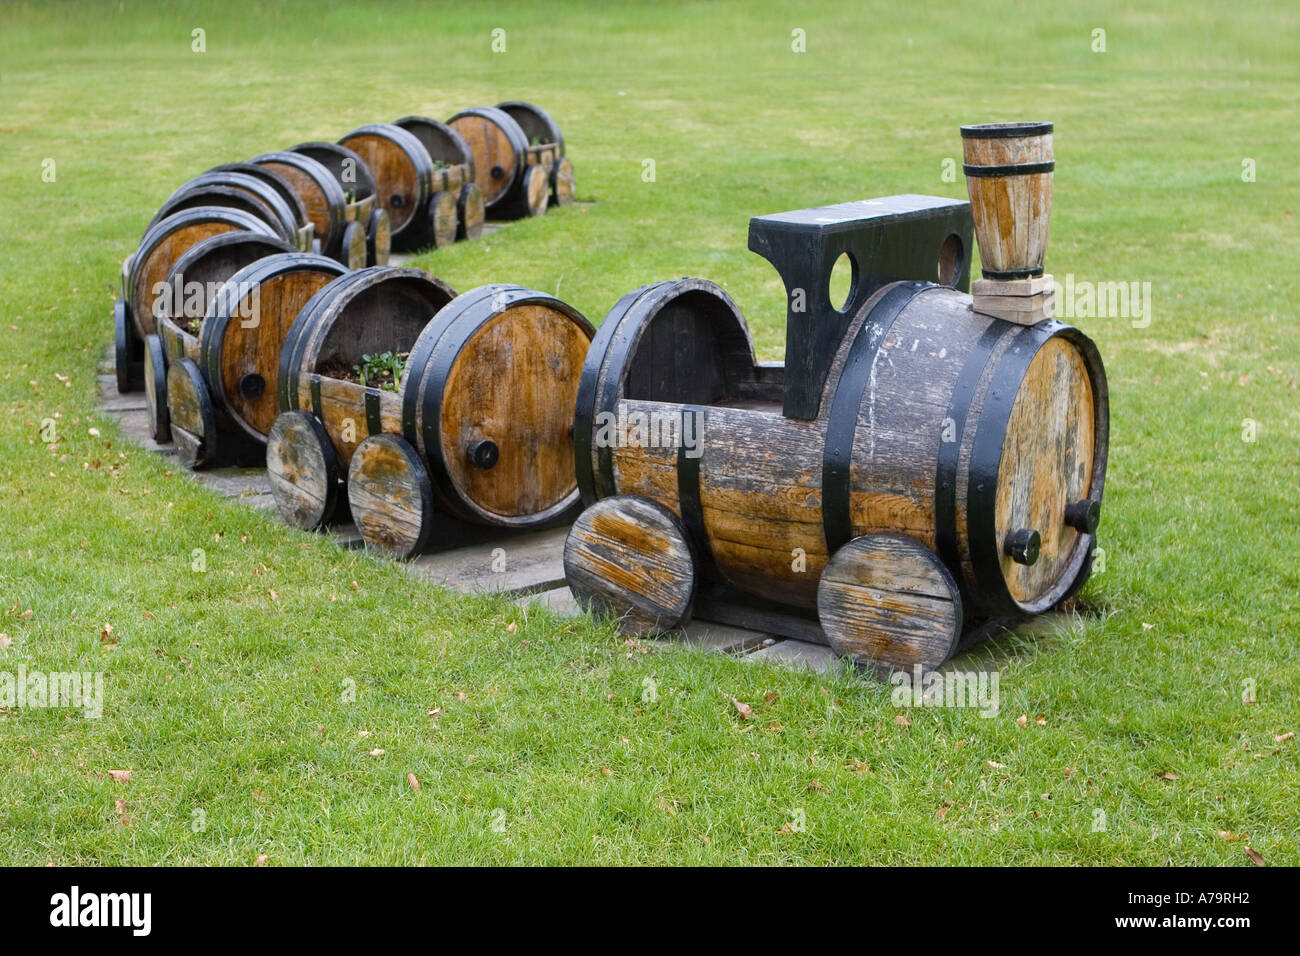 Upcycled Wooden Toy Train Engine Carriages Garden Furniture Made